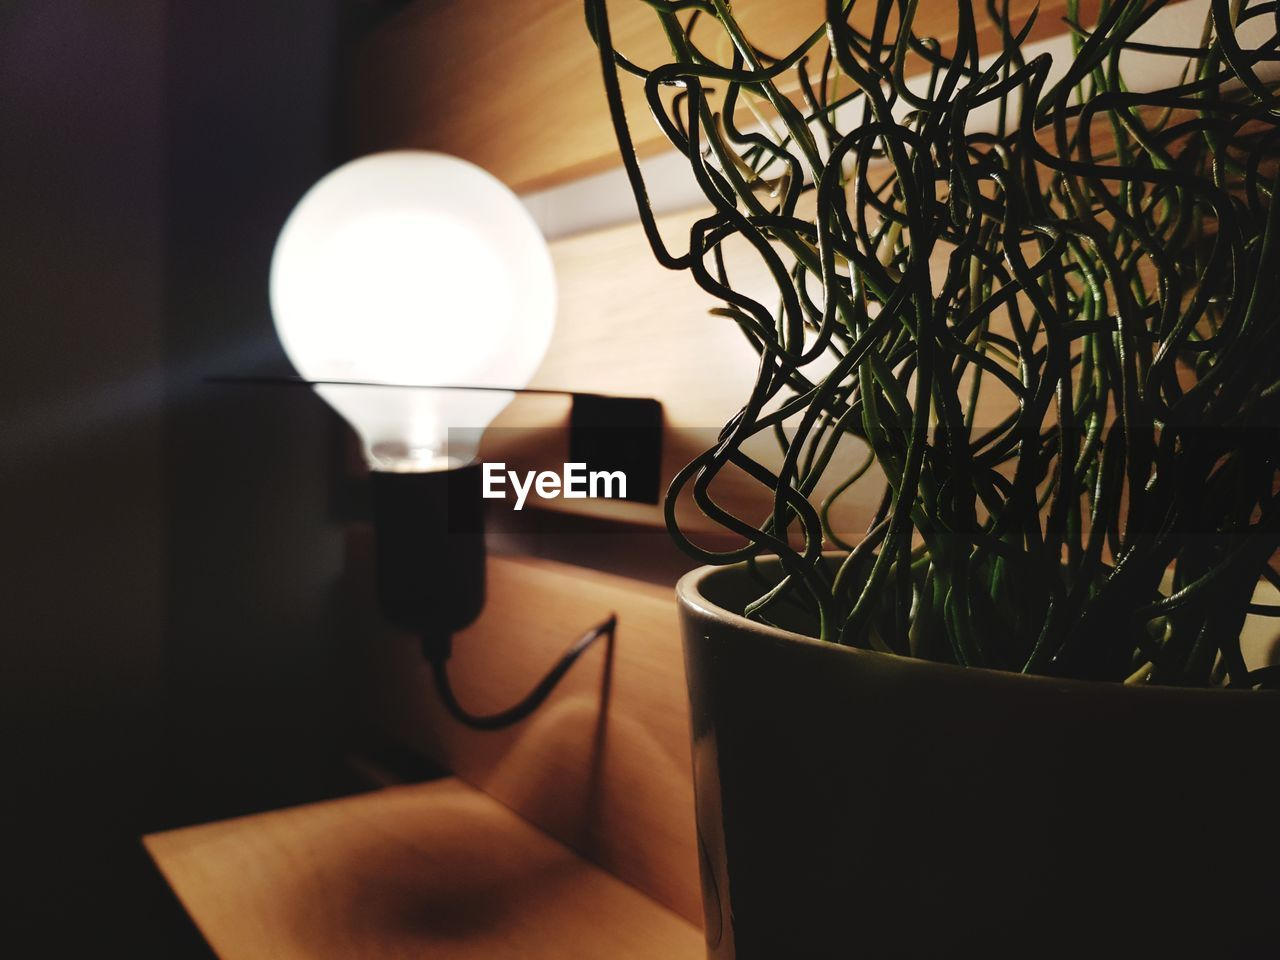 lighting equipment, electric lamp, illuminated, indoors, no people, close-up, table, home interior, electricity, technology, potted plant, plant, electric light, light, still life, glowing, domestic room, nature, decoration, modern, houseplant